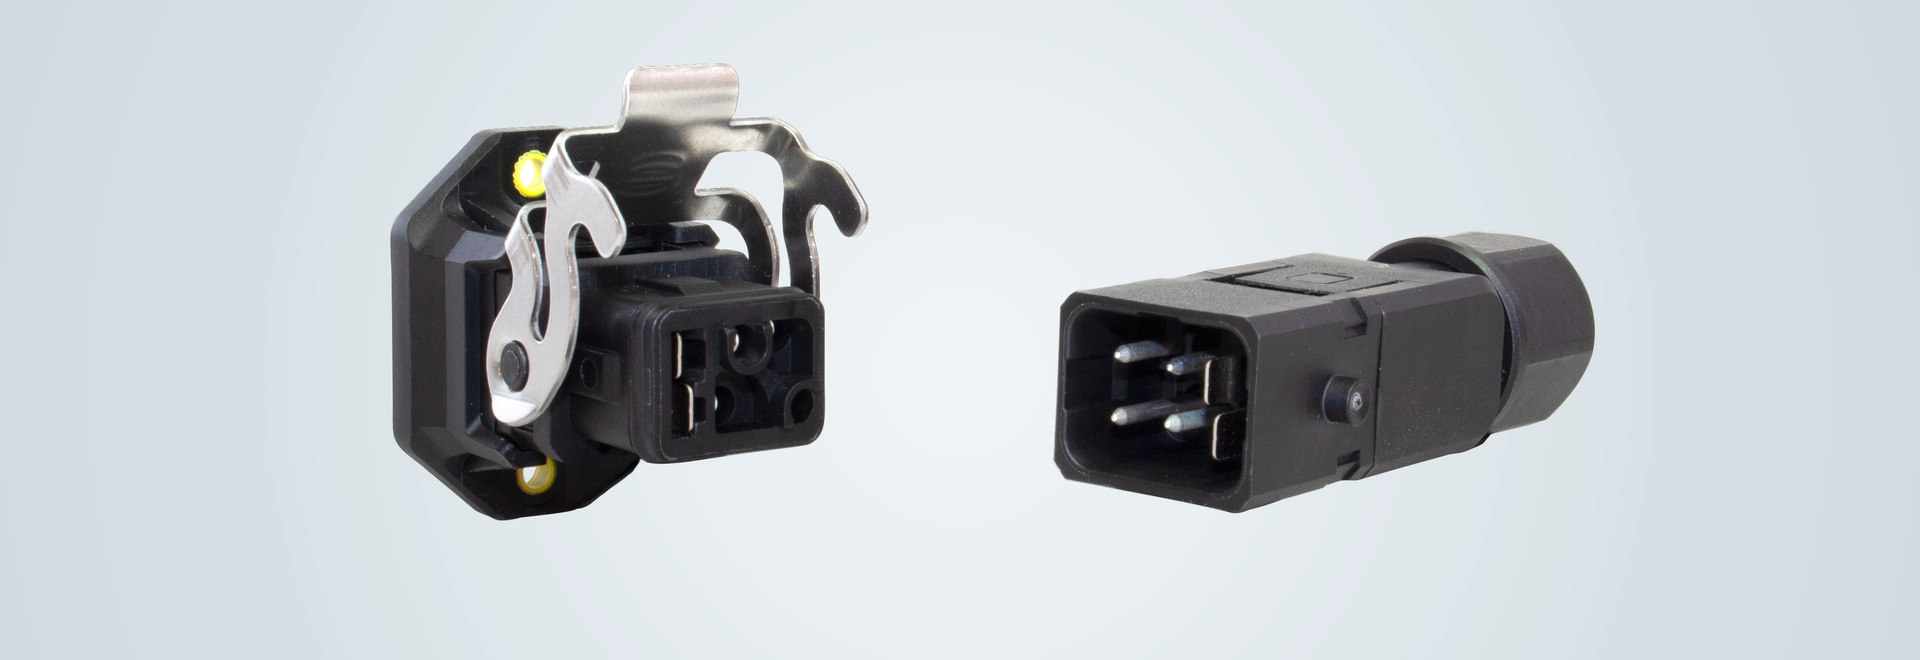 Industrial device connector